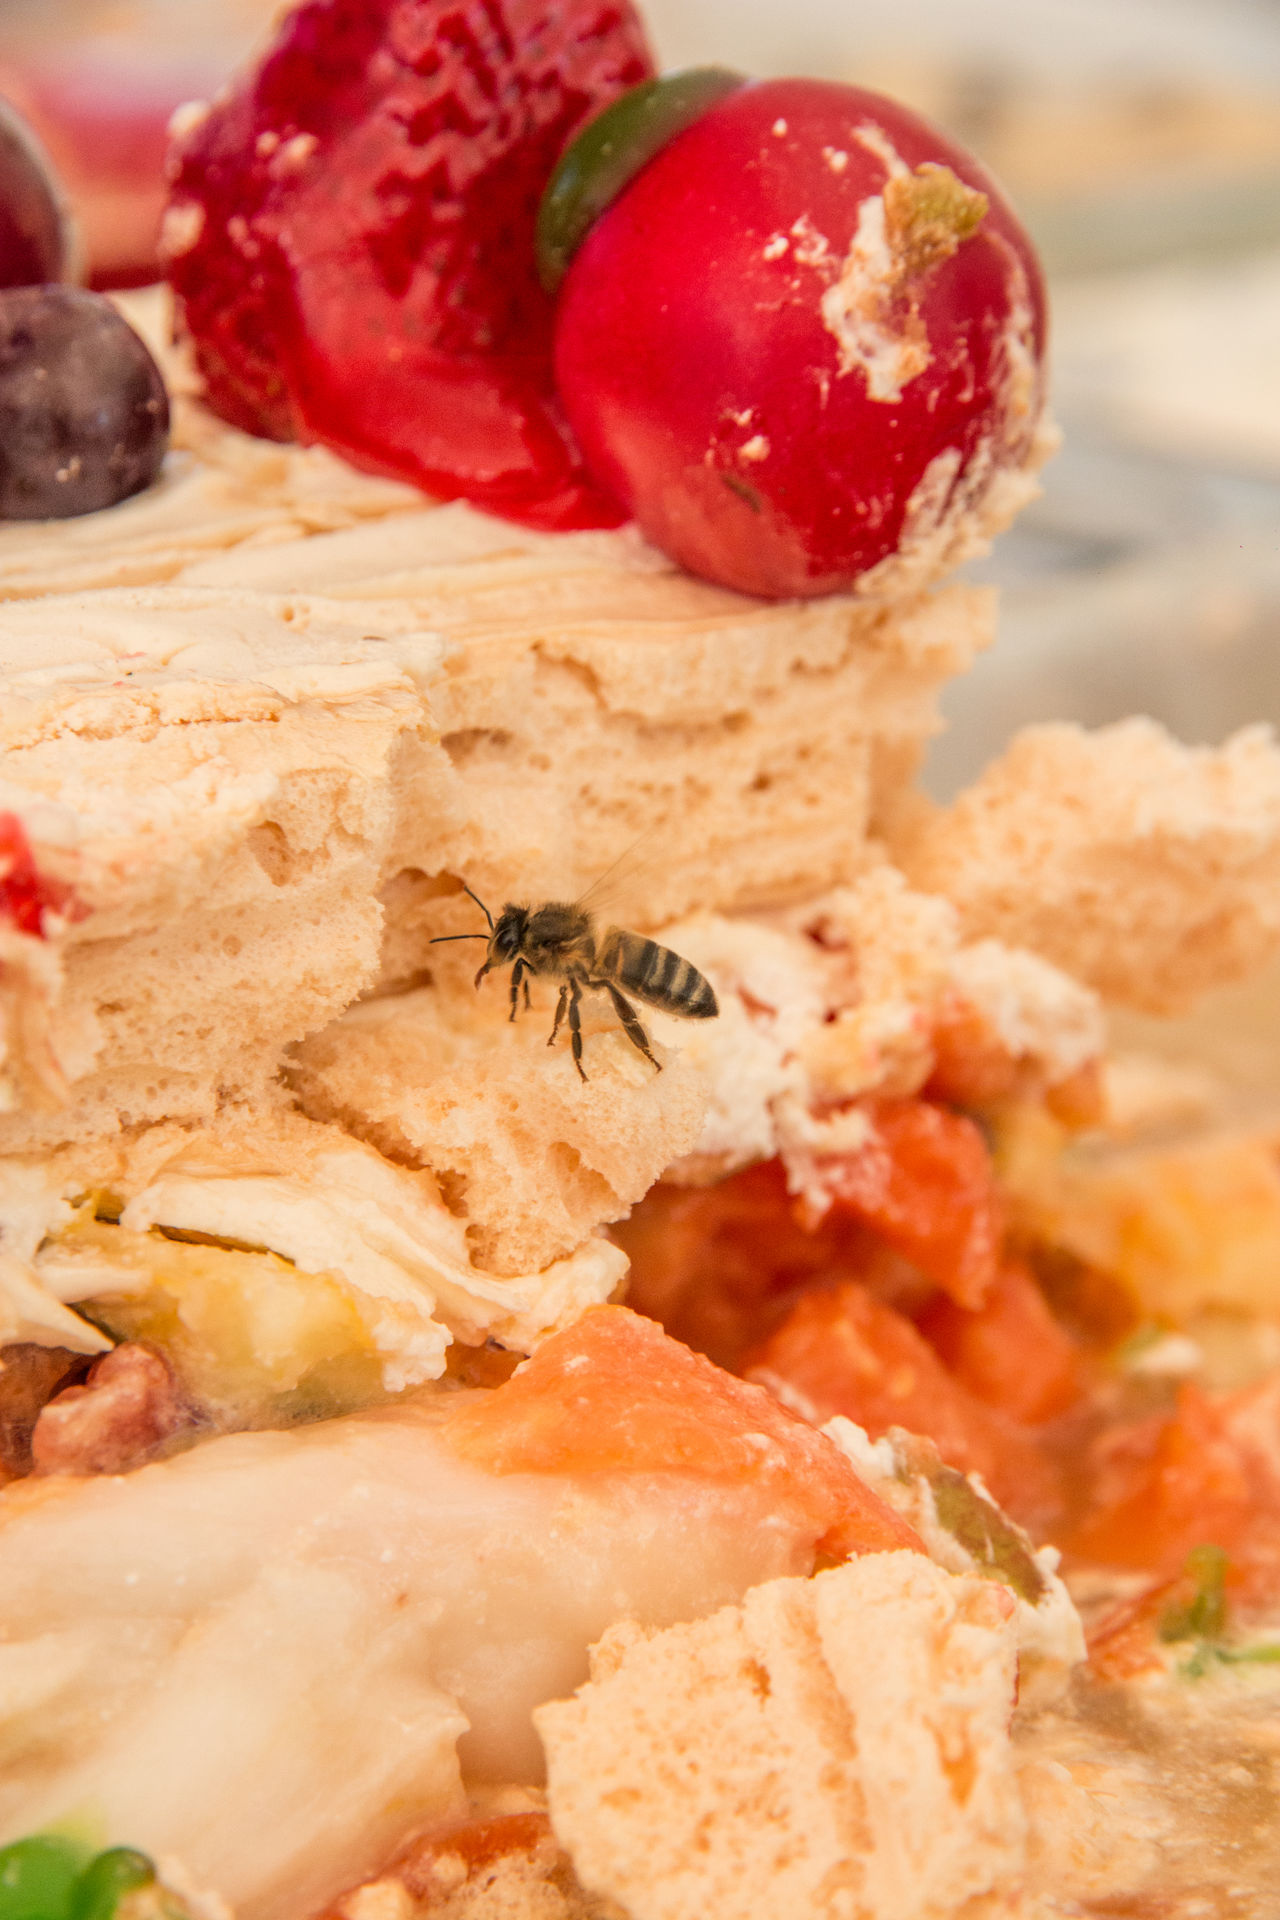 Bees Bees In Dessert Close-up Dessert Food Food And Drink Freshness Iza Iza Boyaca No People Ready-to-eat